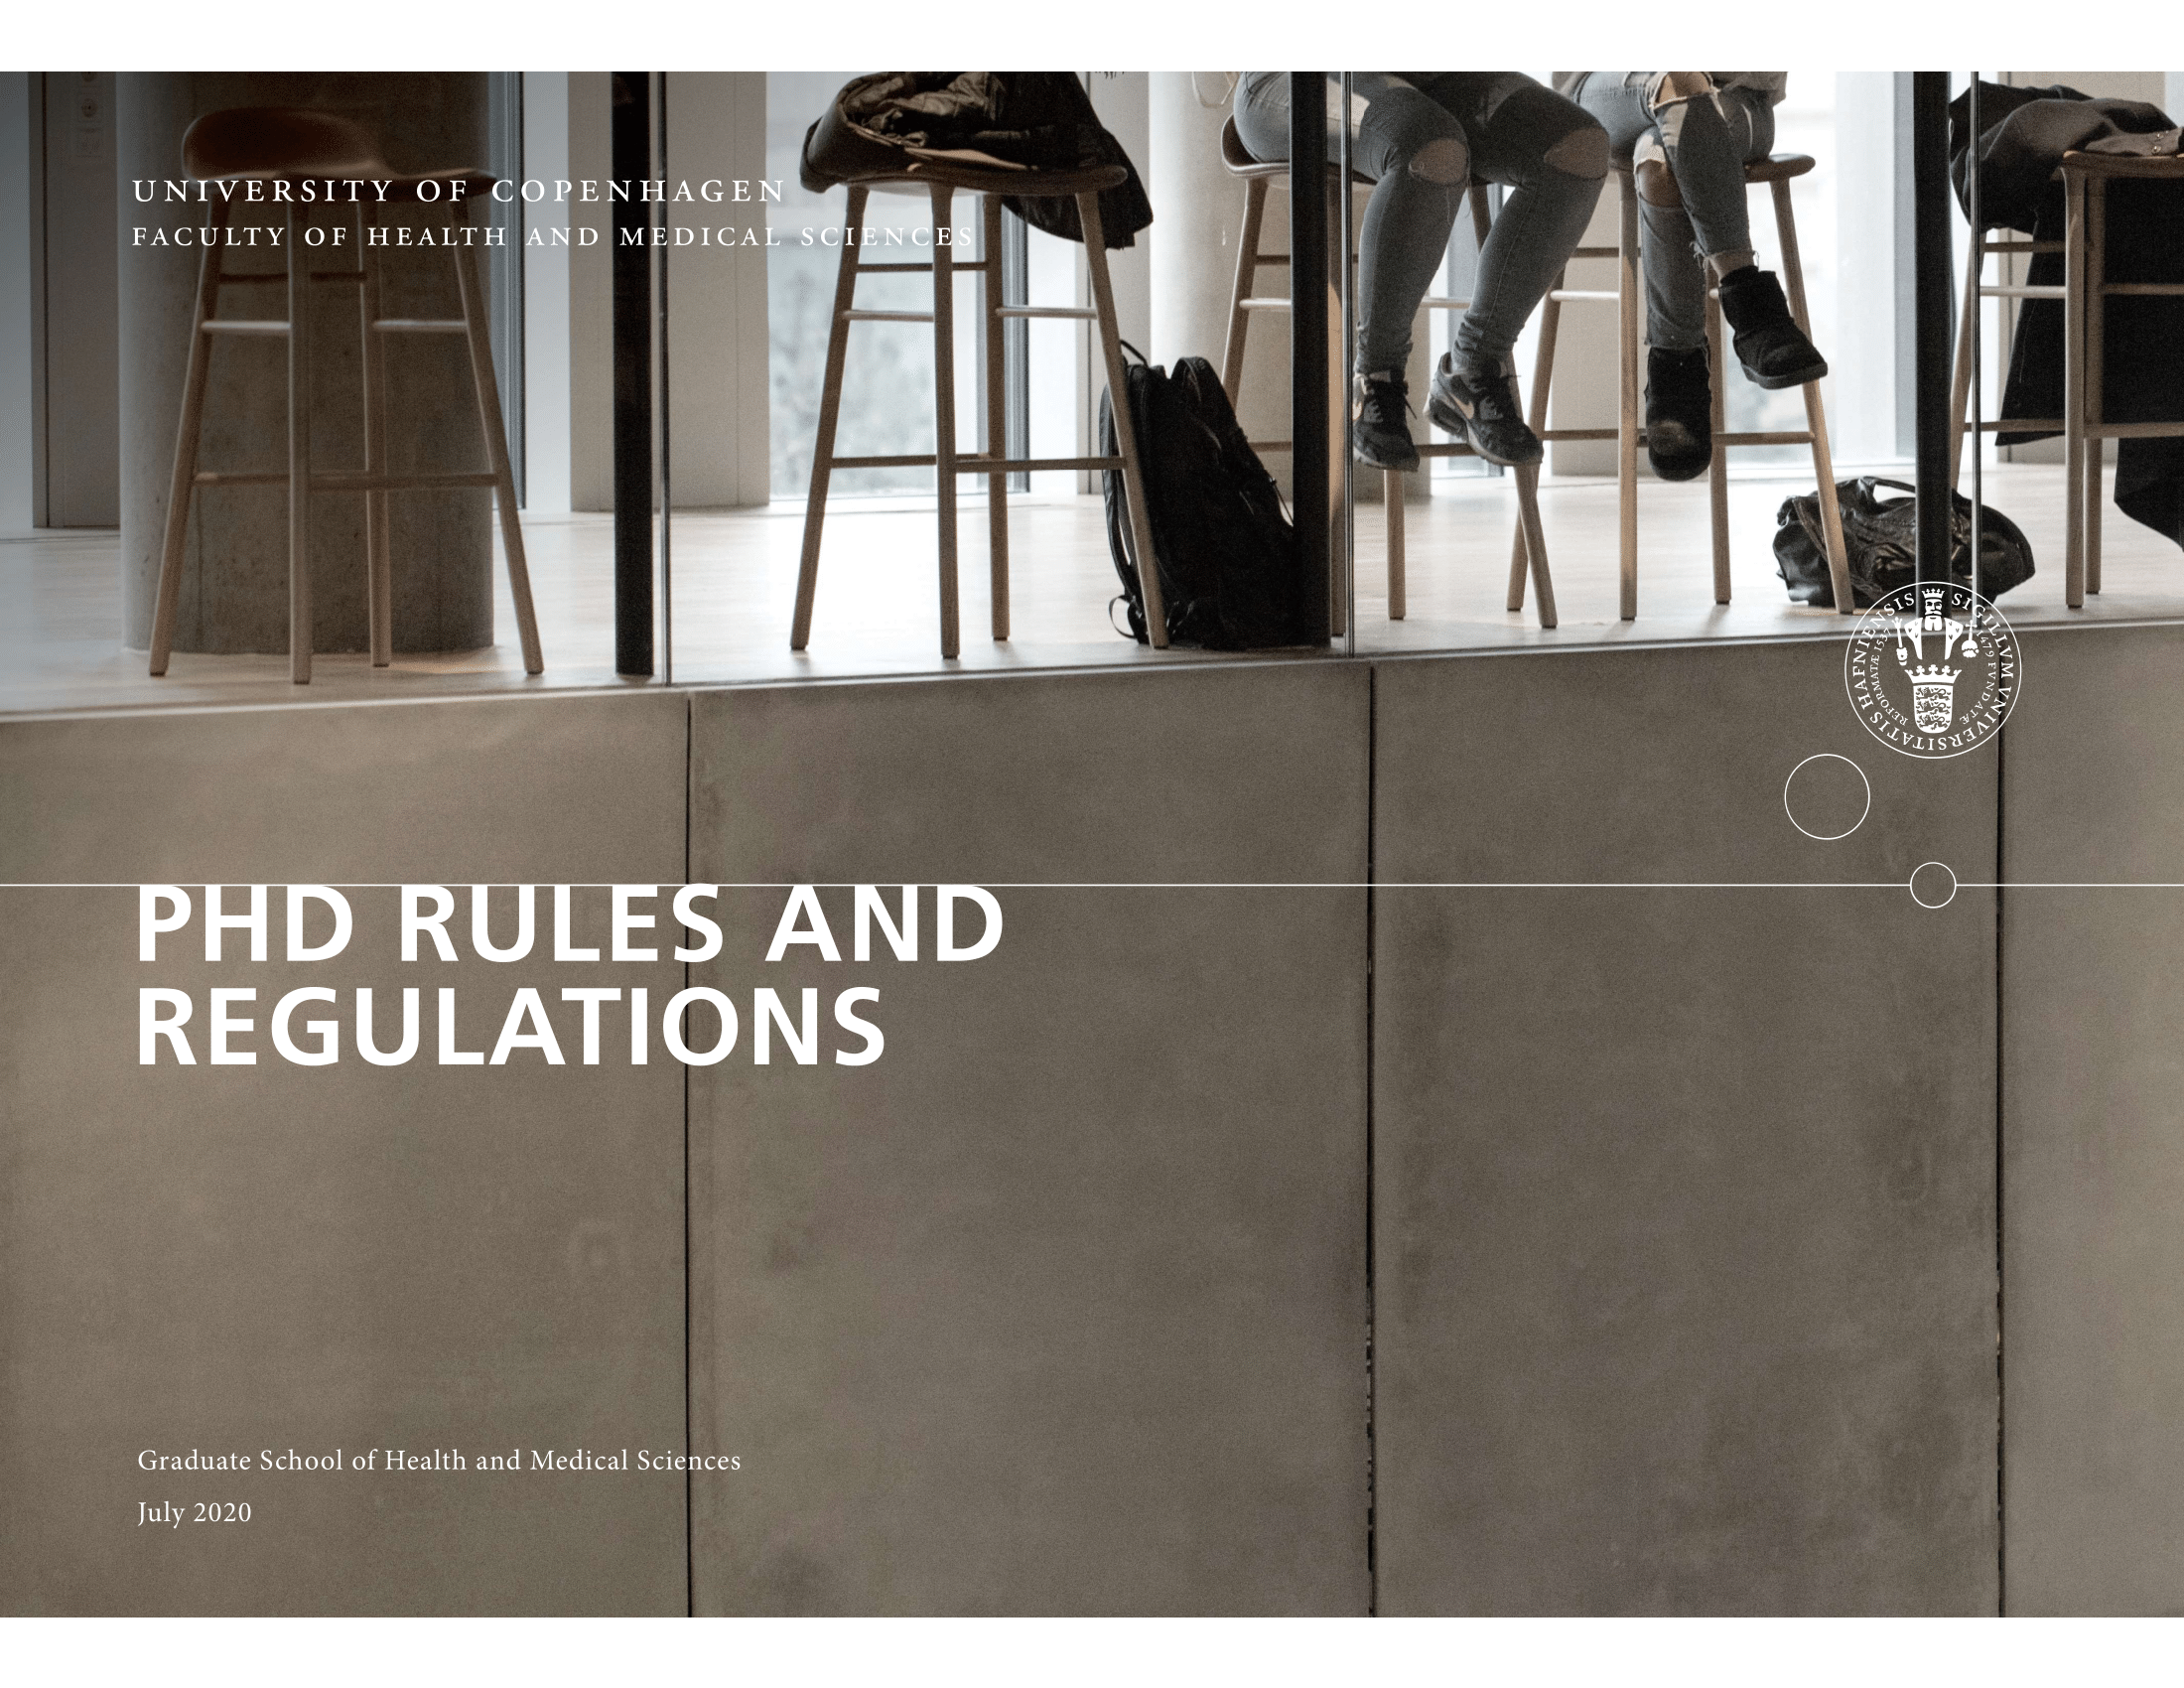 Link to PDF concerning PhD rules and guidelines at UCPH and SUND